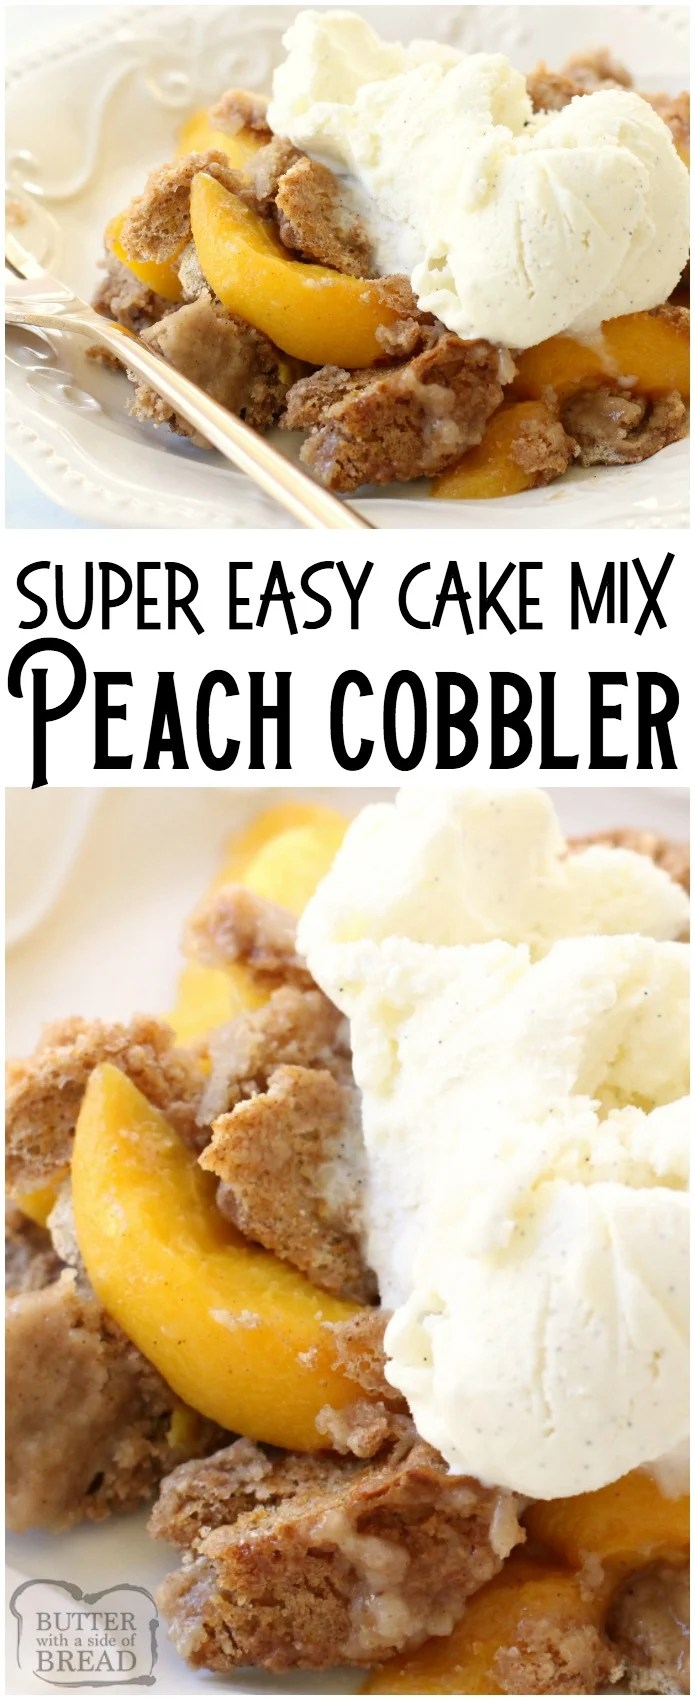 Peach Cobbler with Cake Mix could not be any simpler to make! All it takes is a cake mix + peaches + a can of soda + cinnamon. Delicious and easy peach cobbler recipe! #peach #cobbler #cakemix #dessert #baking #sweets #recipe from BUTTER WITH A SIDE OF BREAD